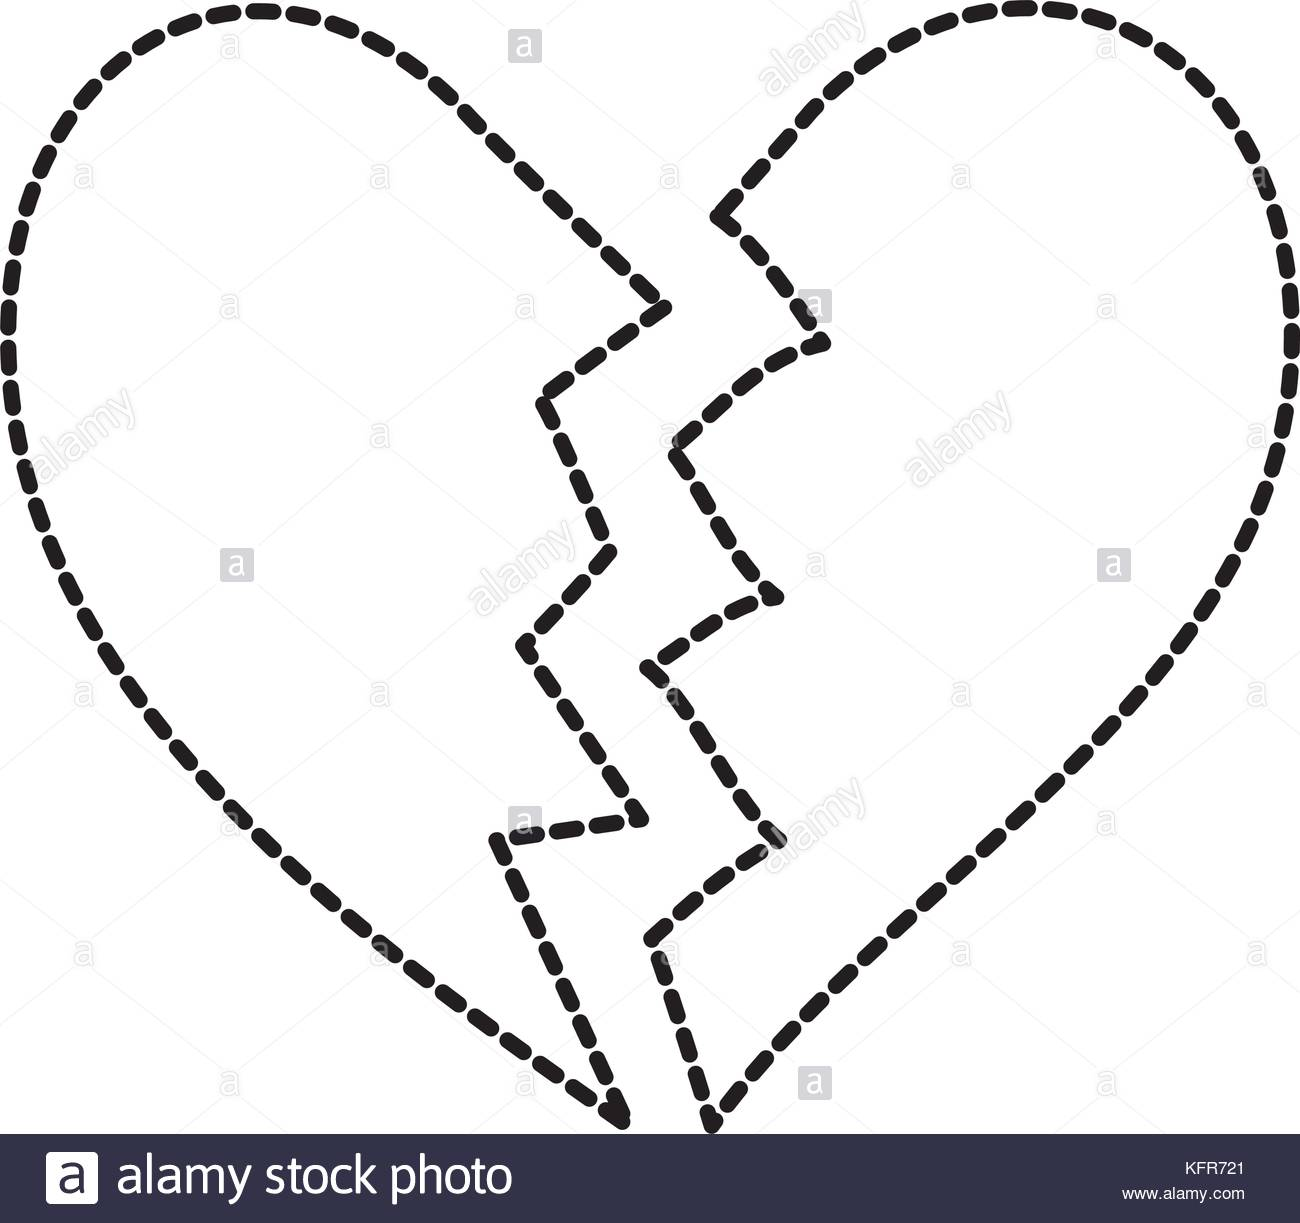 1300x1223 Broken Heart Black And White Stock Photos Amp Images